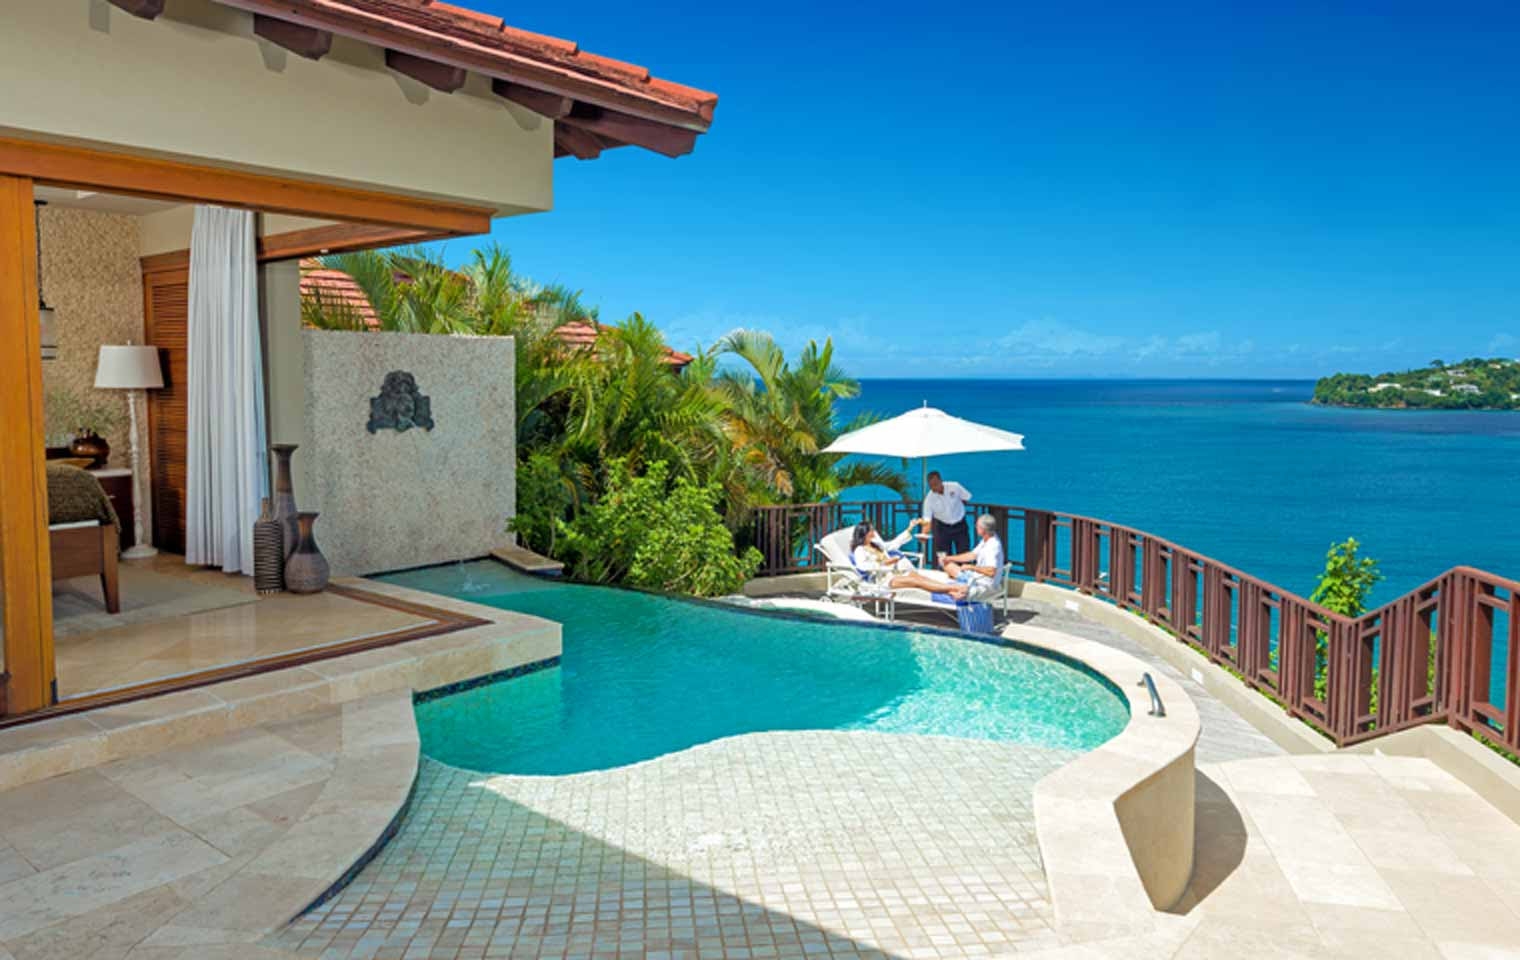 All Inclusive Resorts  Caribbean Vacation Packages  Sandals